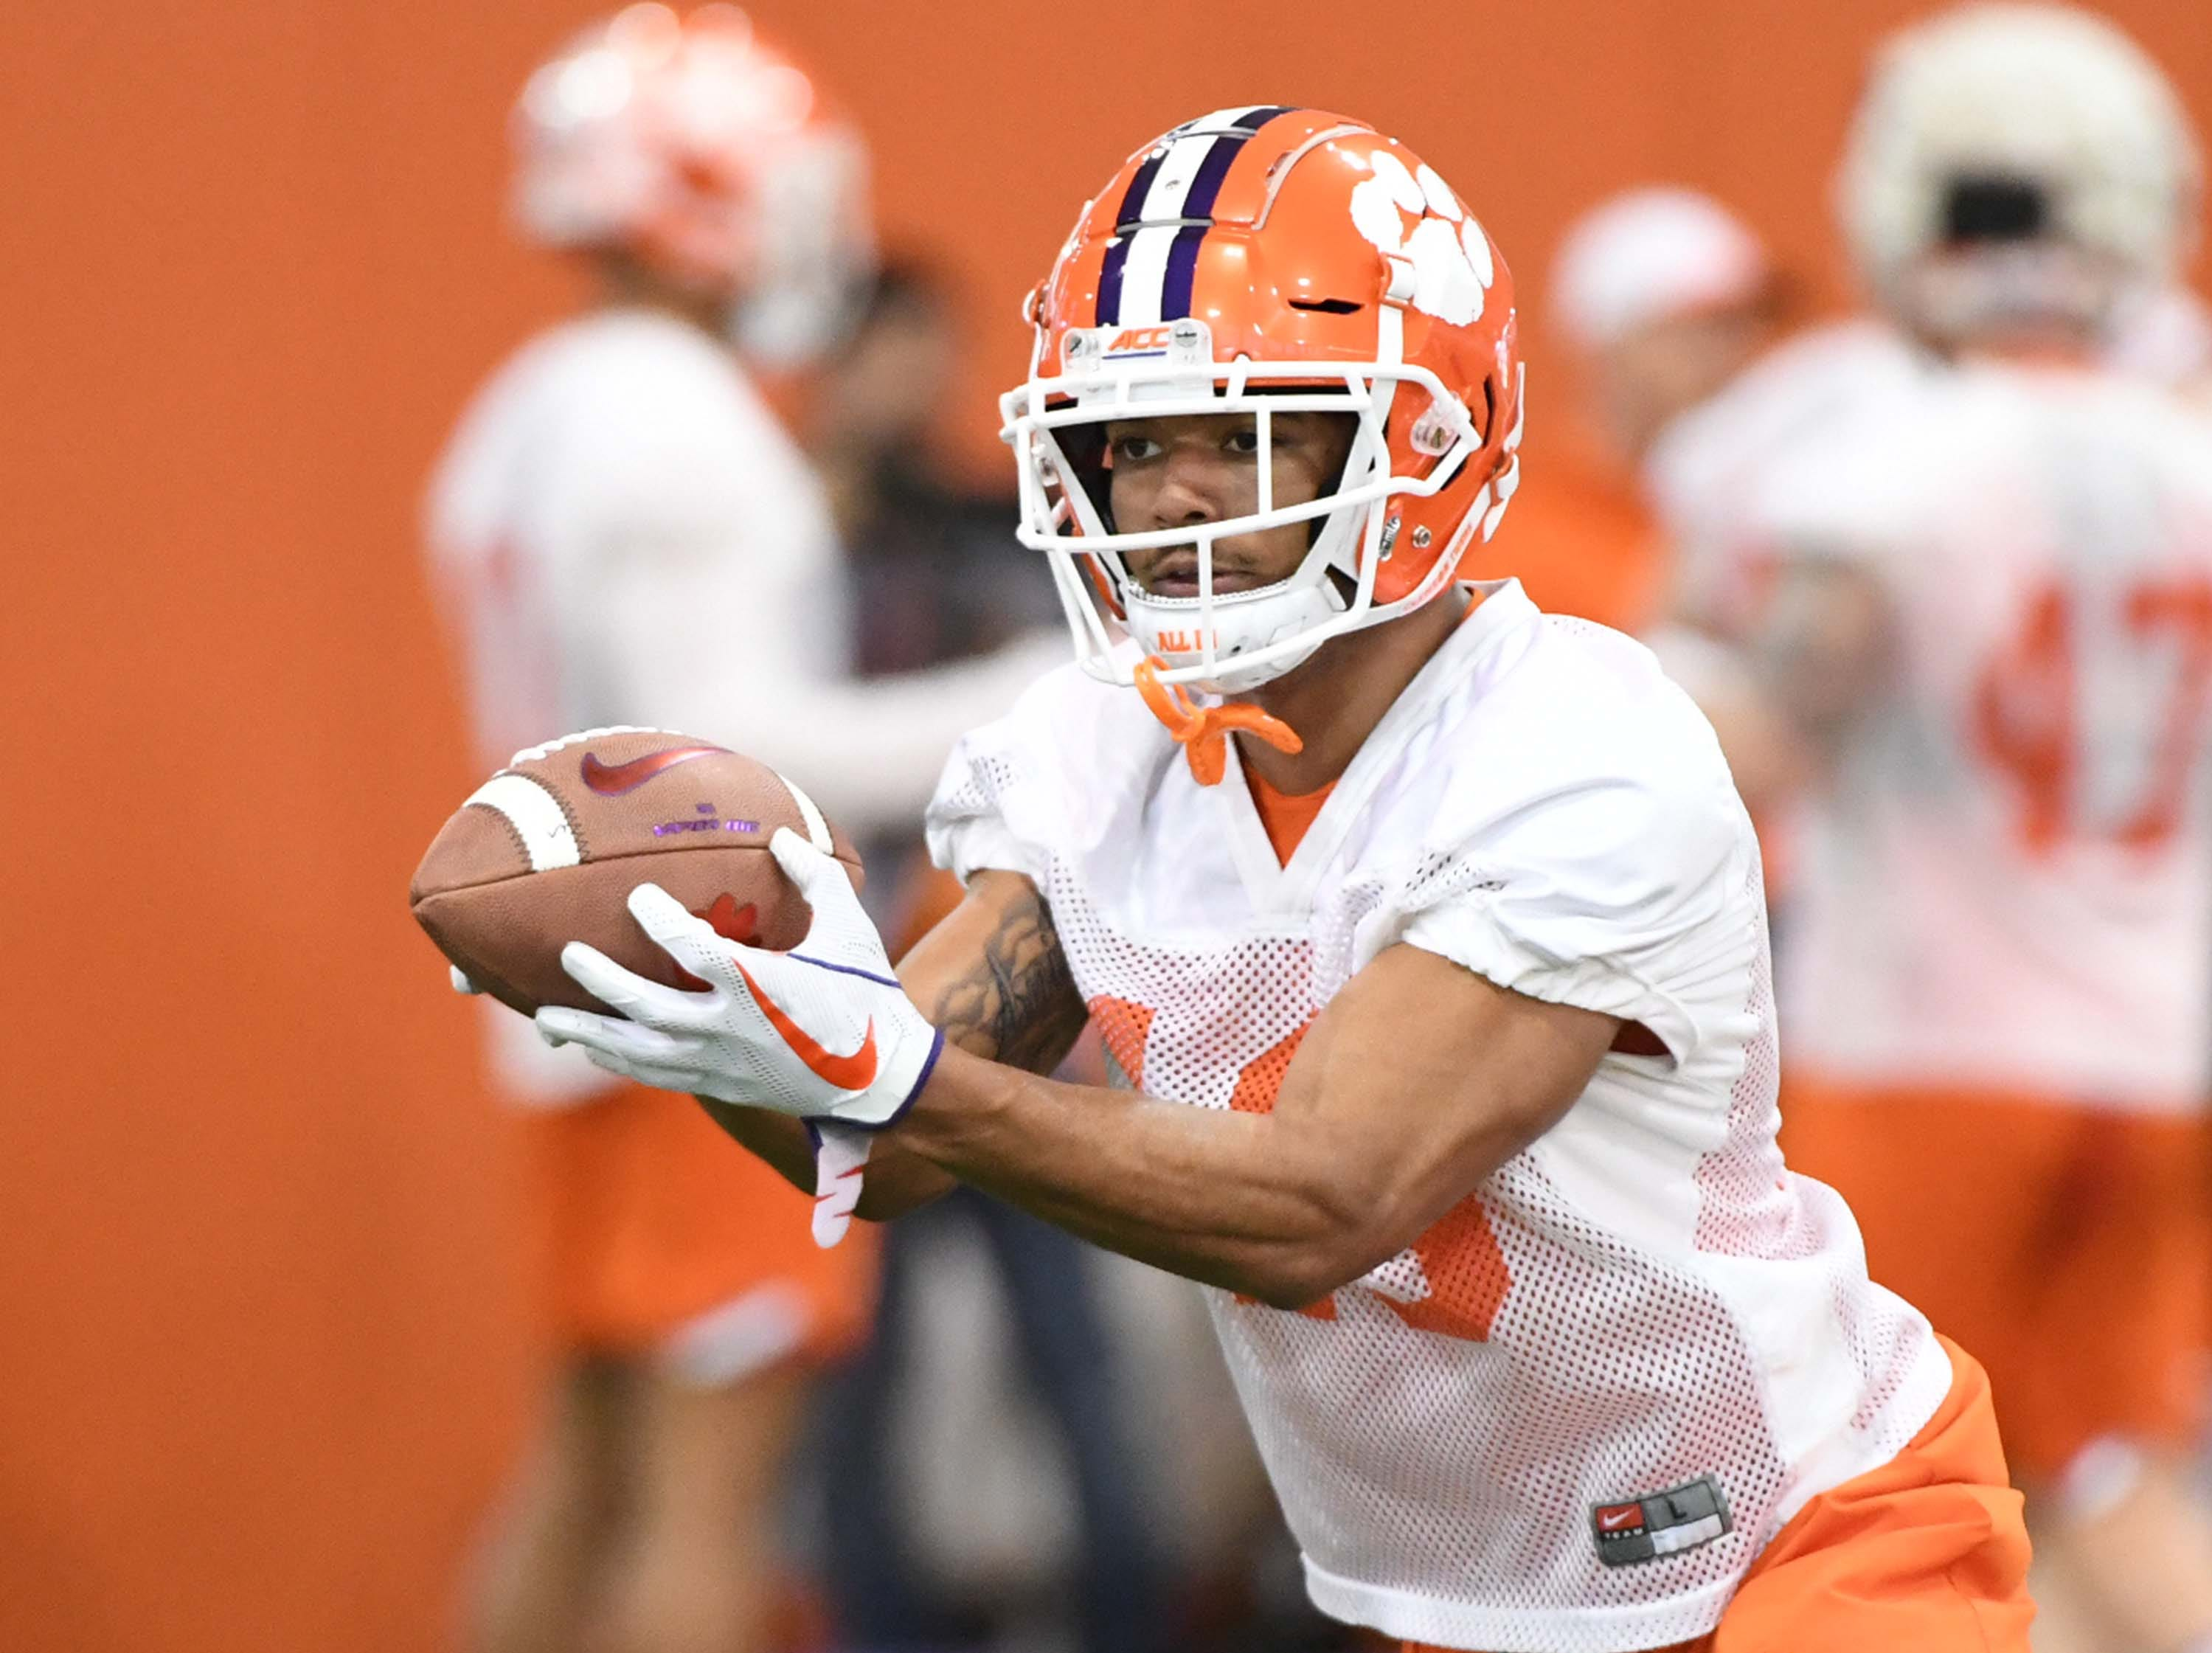 Clemson defensive back Joseph Charleston (18) catches a ball during the first practice at the Clemson Indoor Practice Facility in Clemson Wednesday, February 27, 2019.